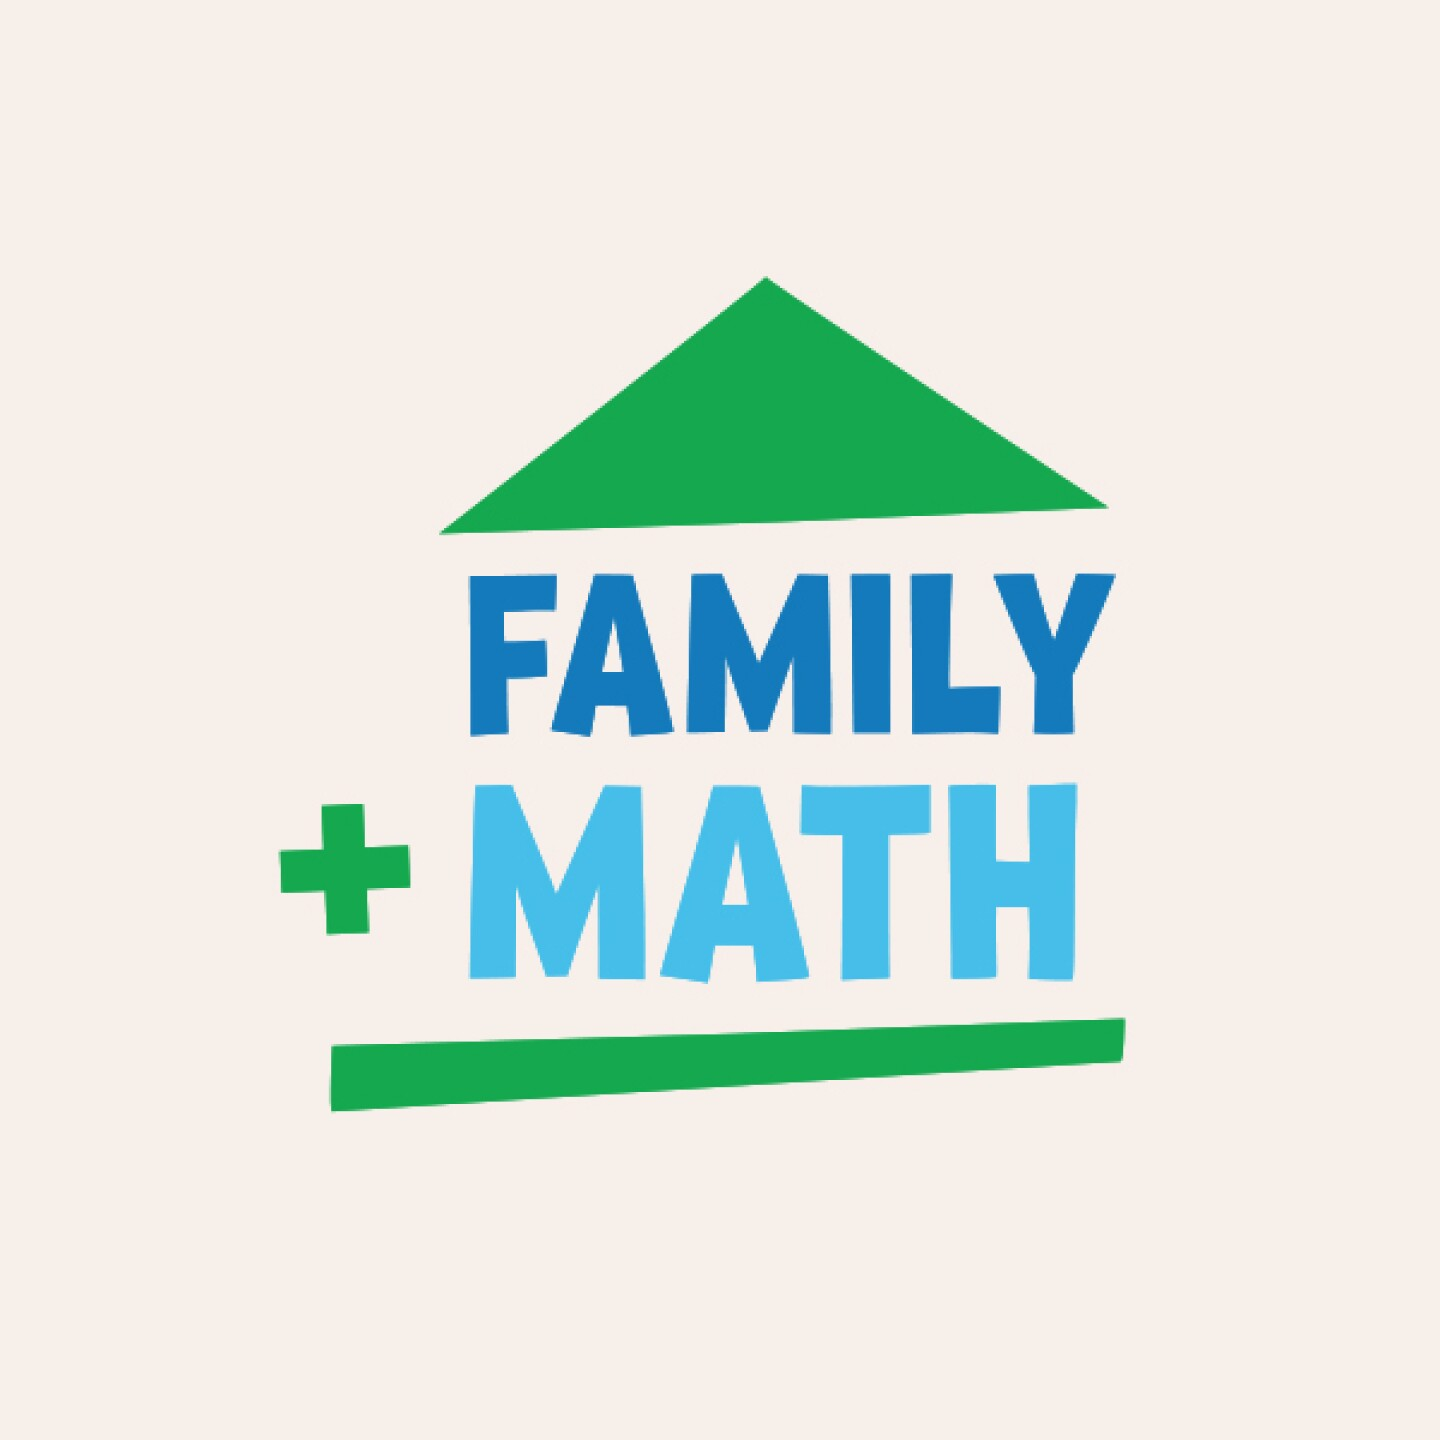 Family Math Icon for About Page